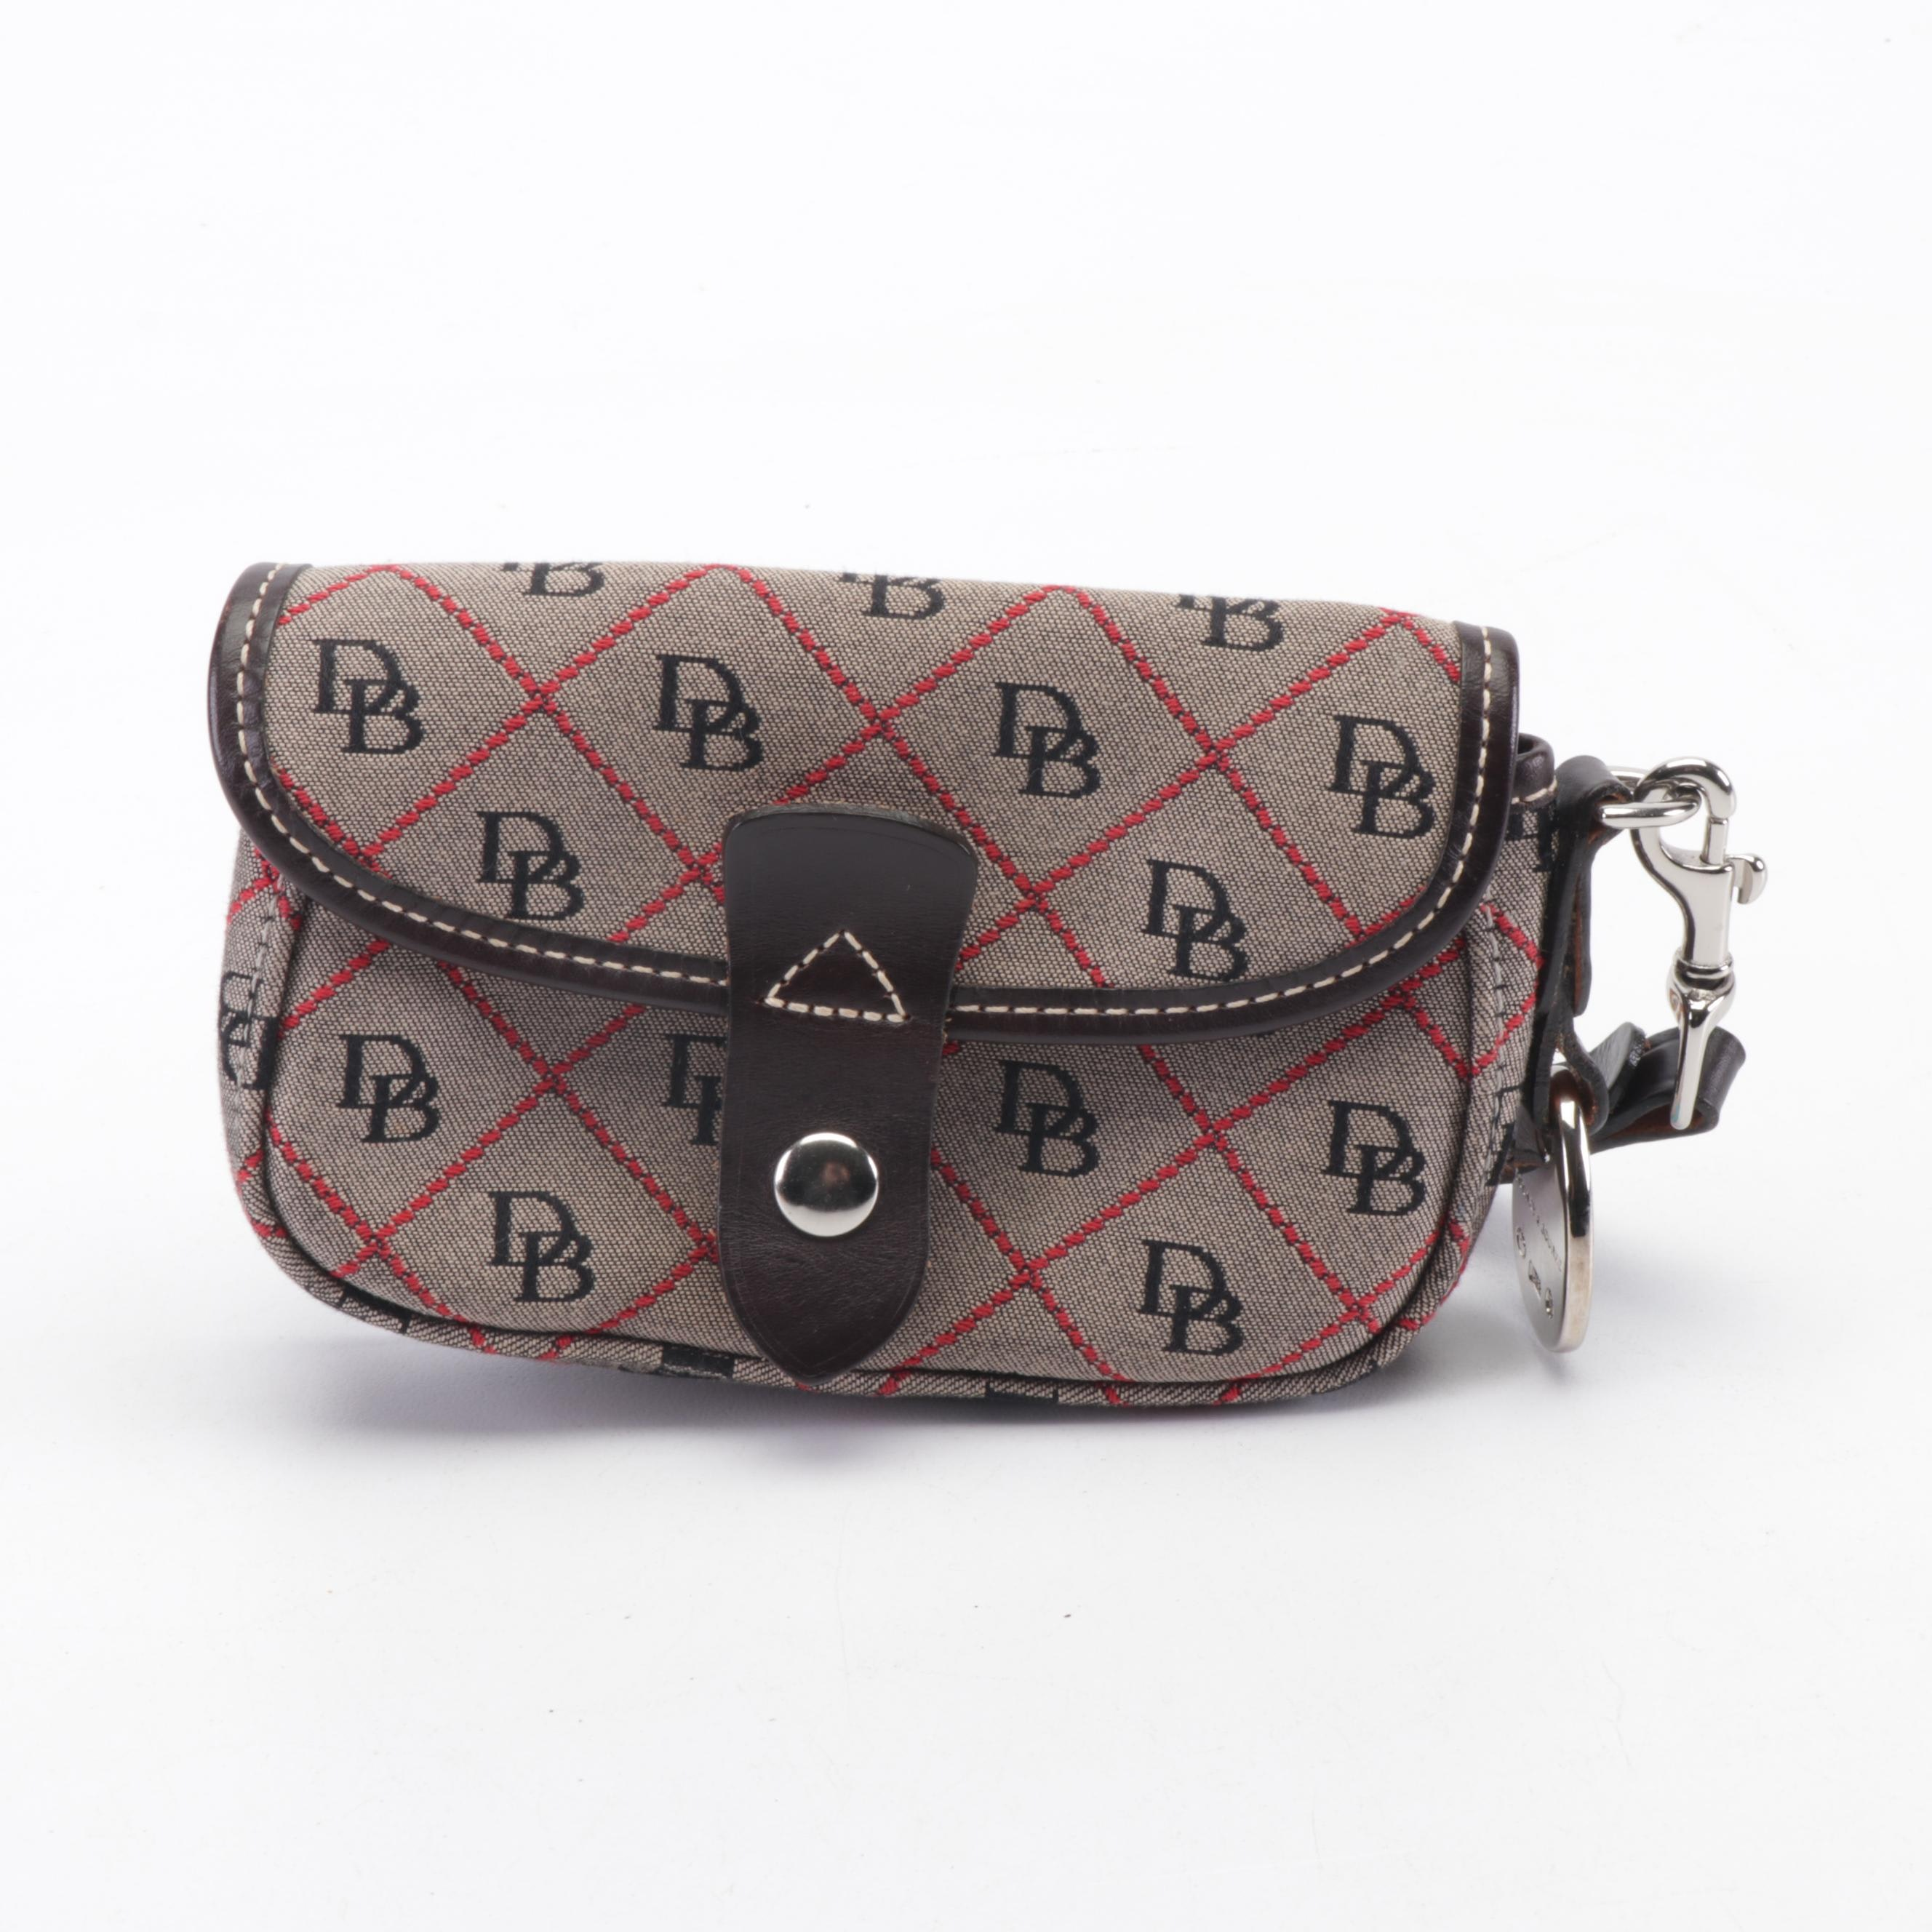 Dooney & Bourke Signature Canvas and Leather Wristlet